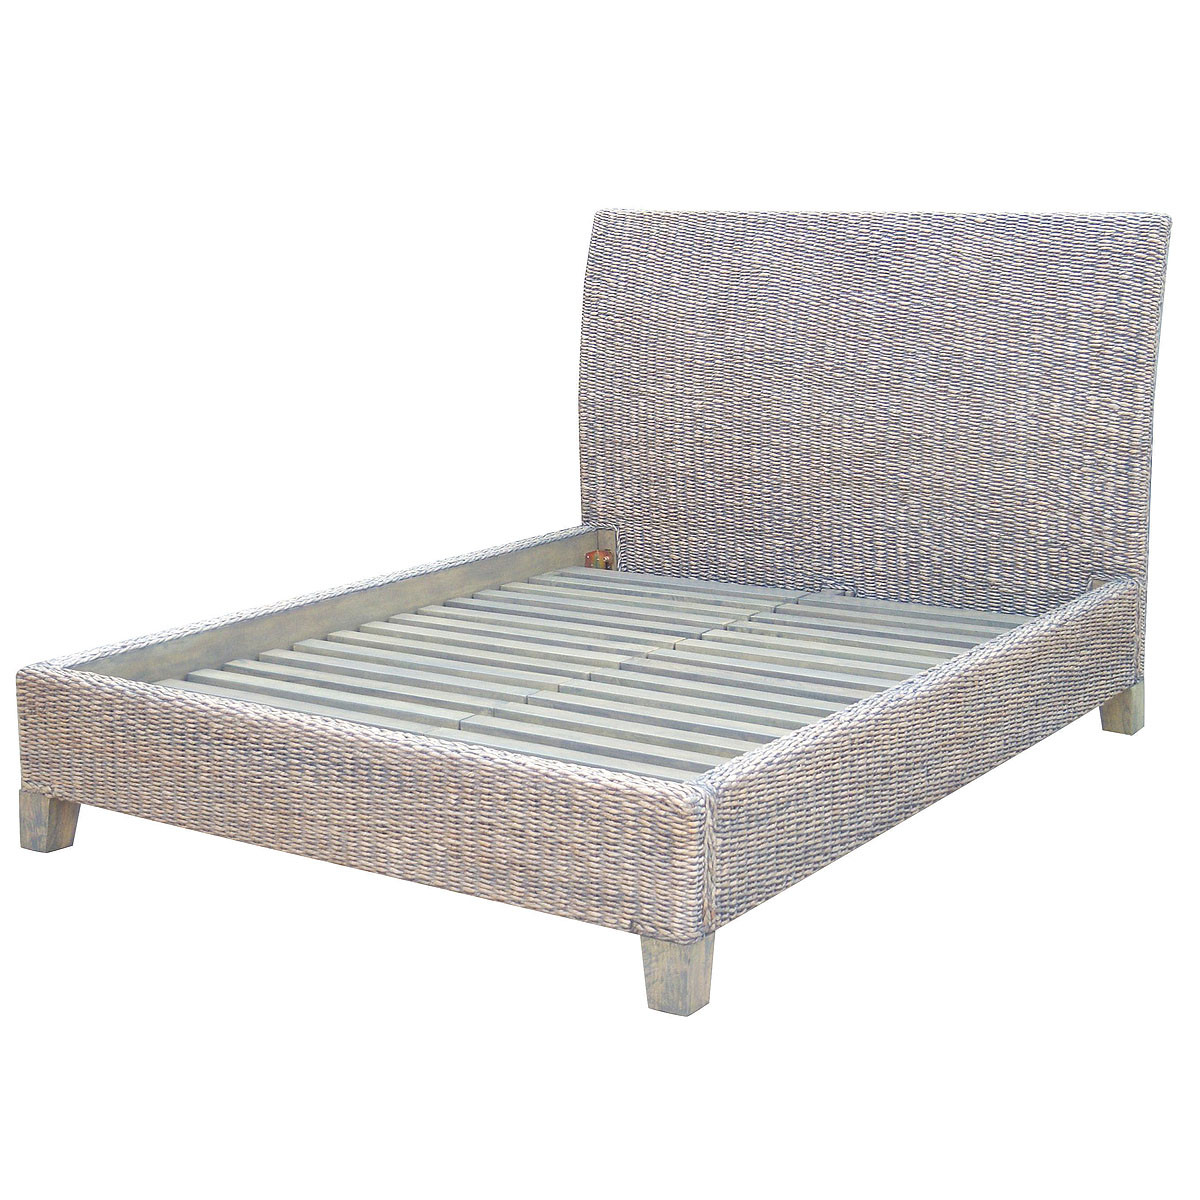 banana leaf woven platform queen bed  gray  zin home -  banana leaf woven platform queen bed  gray